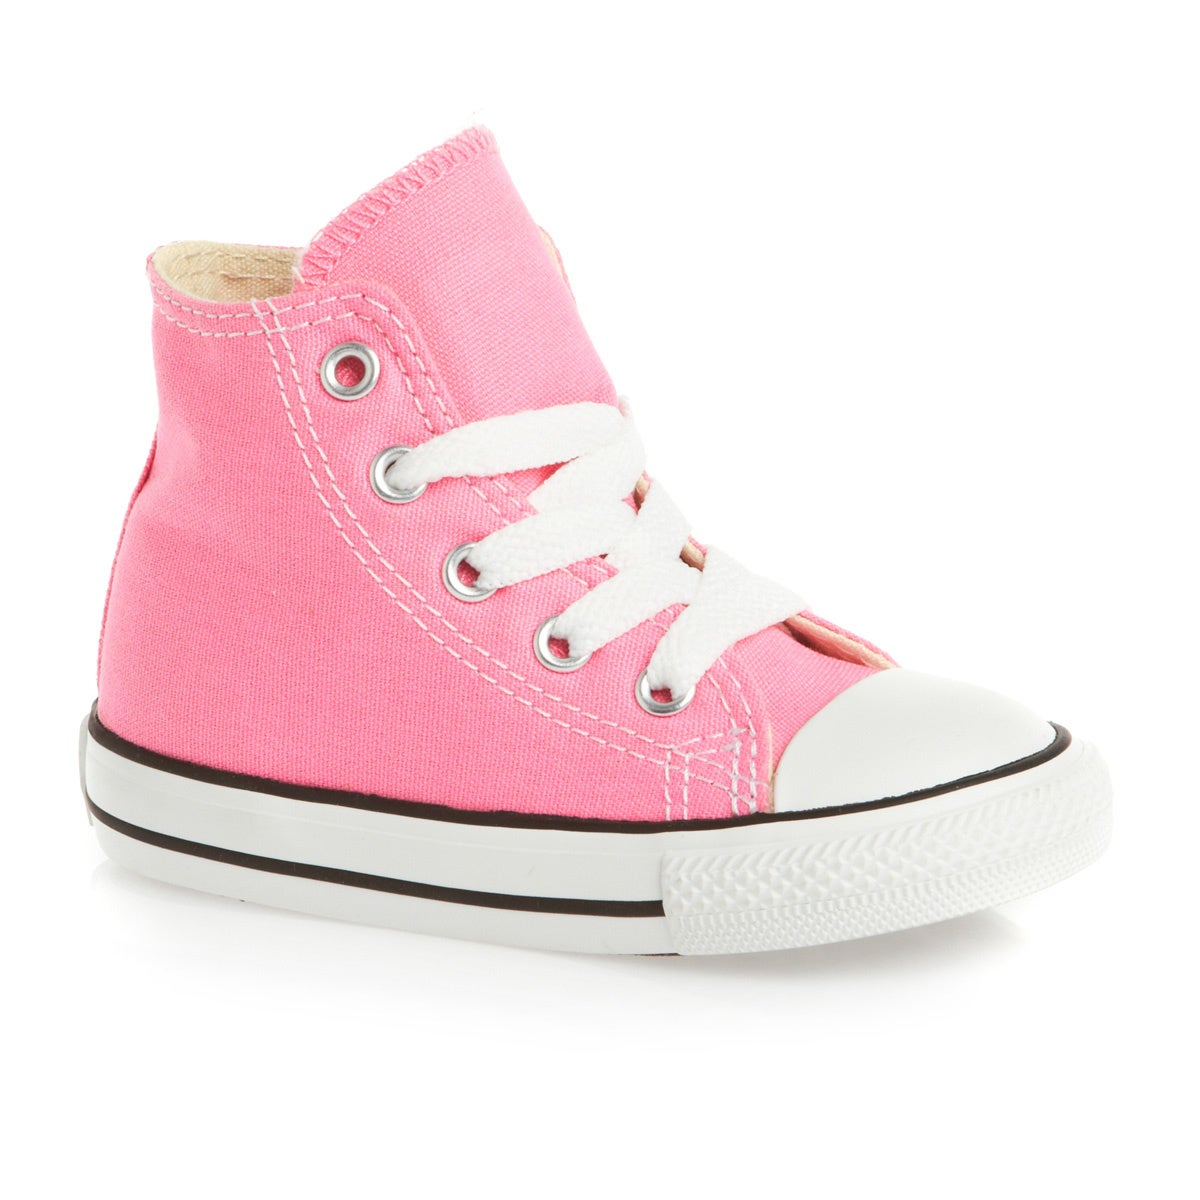 Converse All Stars Hi Kids Toddler Shoes - Pink